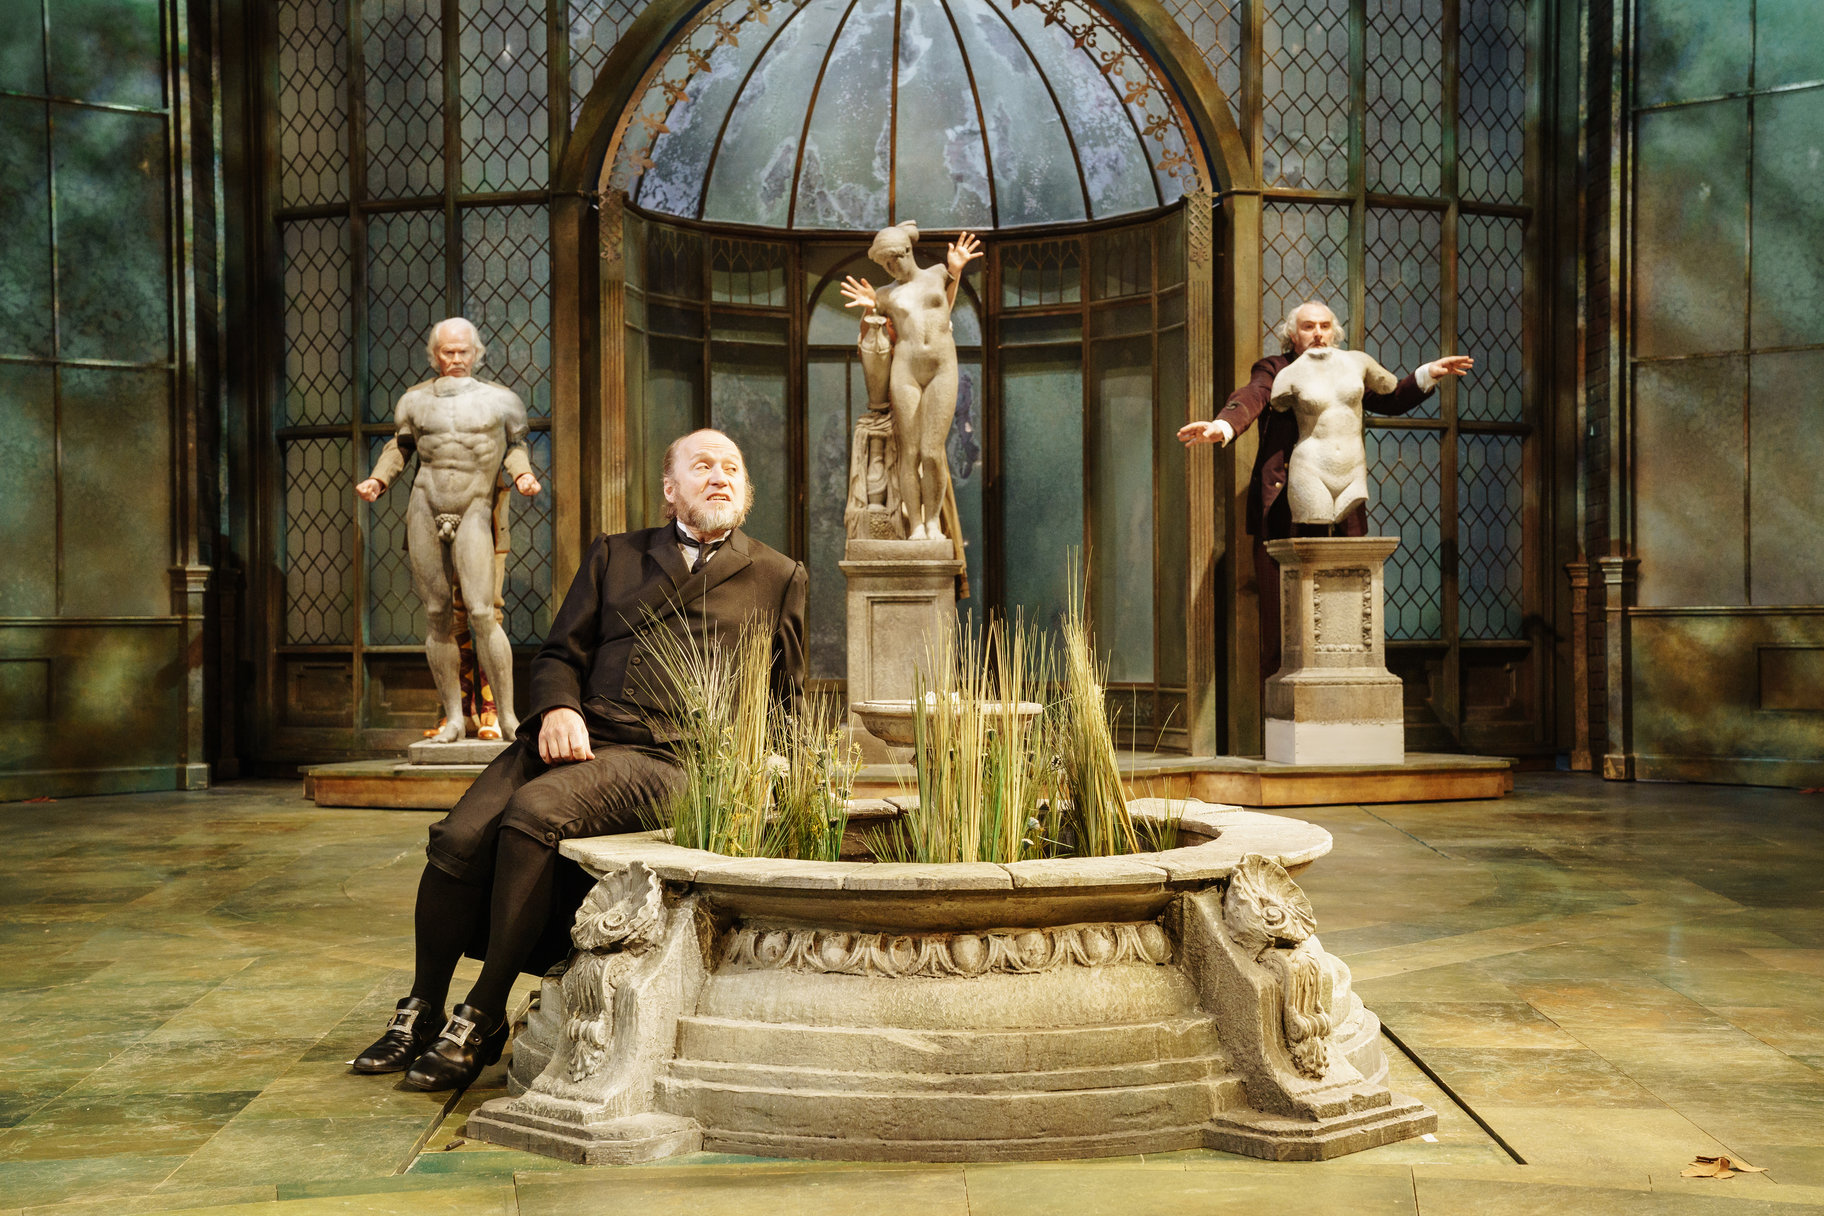 Malvolio sits on the edge of a stone flower bed in a conservatory wearing a butler's uniform. He is watched by Sir Toby, Sir Andrew and Fabia who all hide behind old and damaged statues in the 2017 production of Twelfth Night.